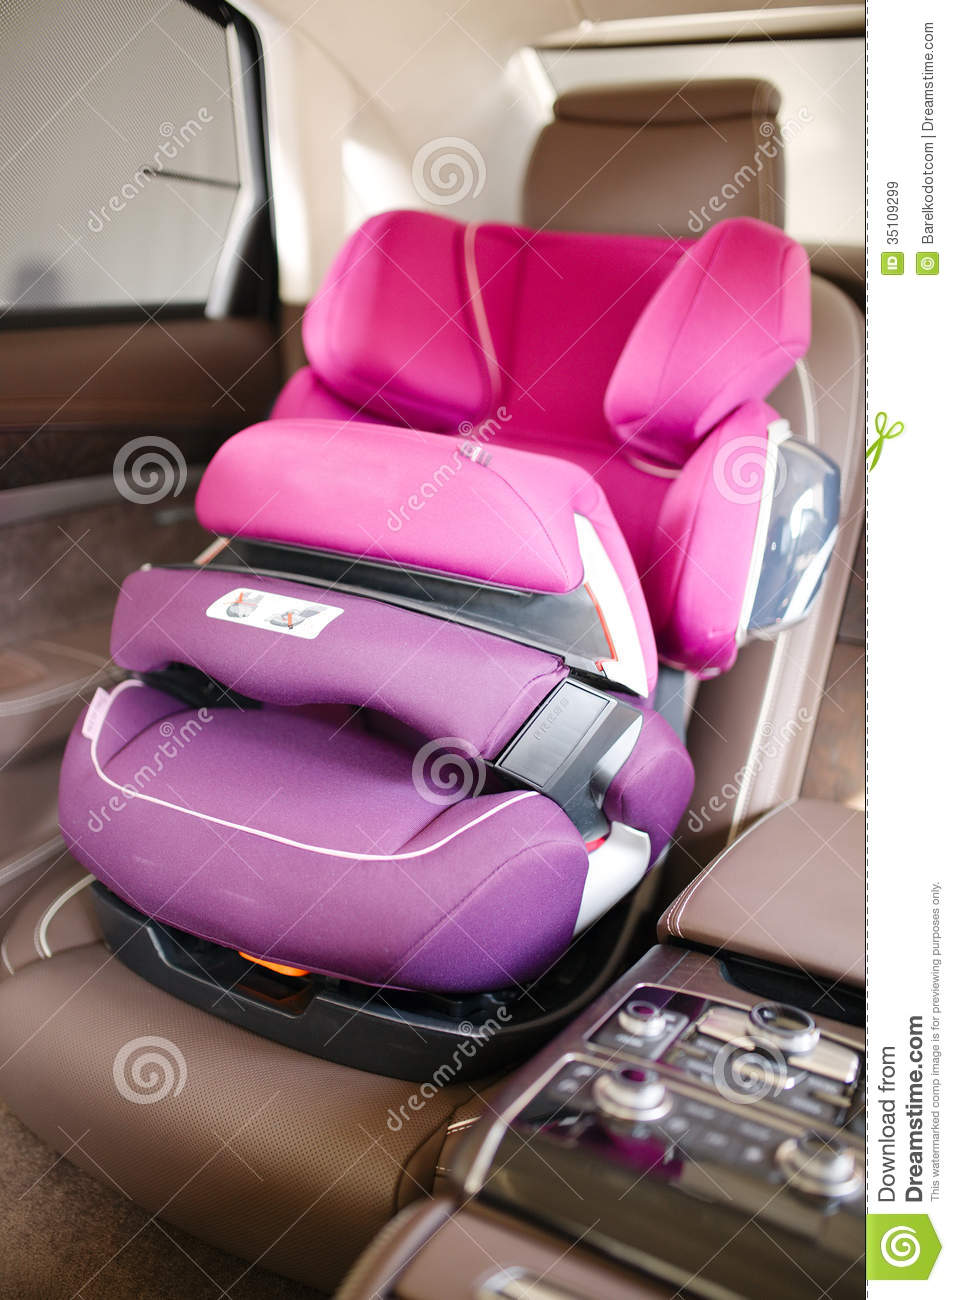 pink car seat for toddler baby car seat stock image image of care infant person disney minnie. Black Bedroom Furniture Sets. Home Design Ideas